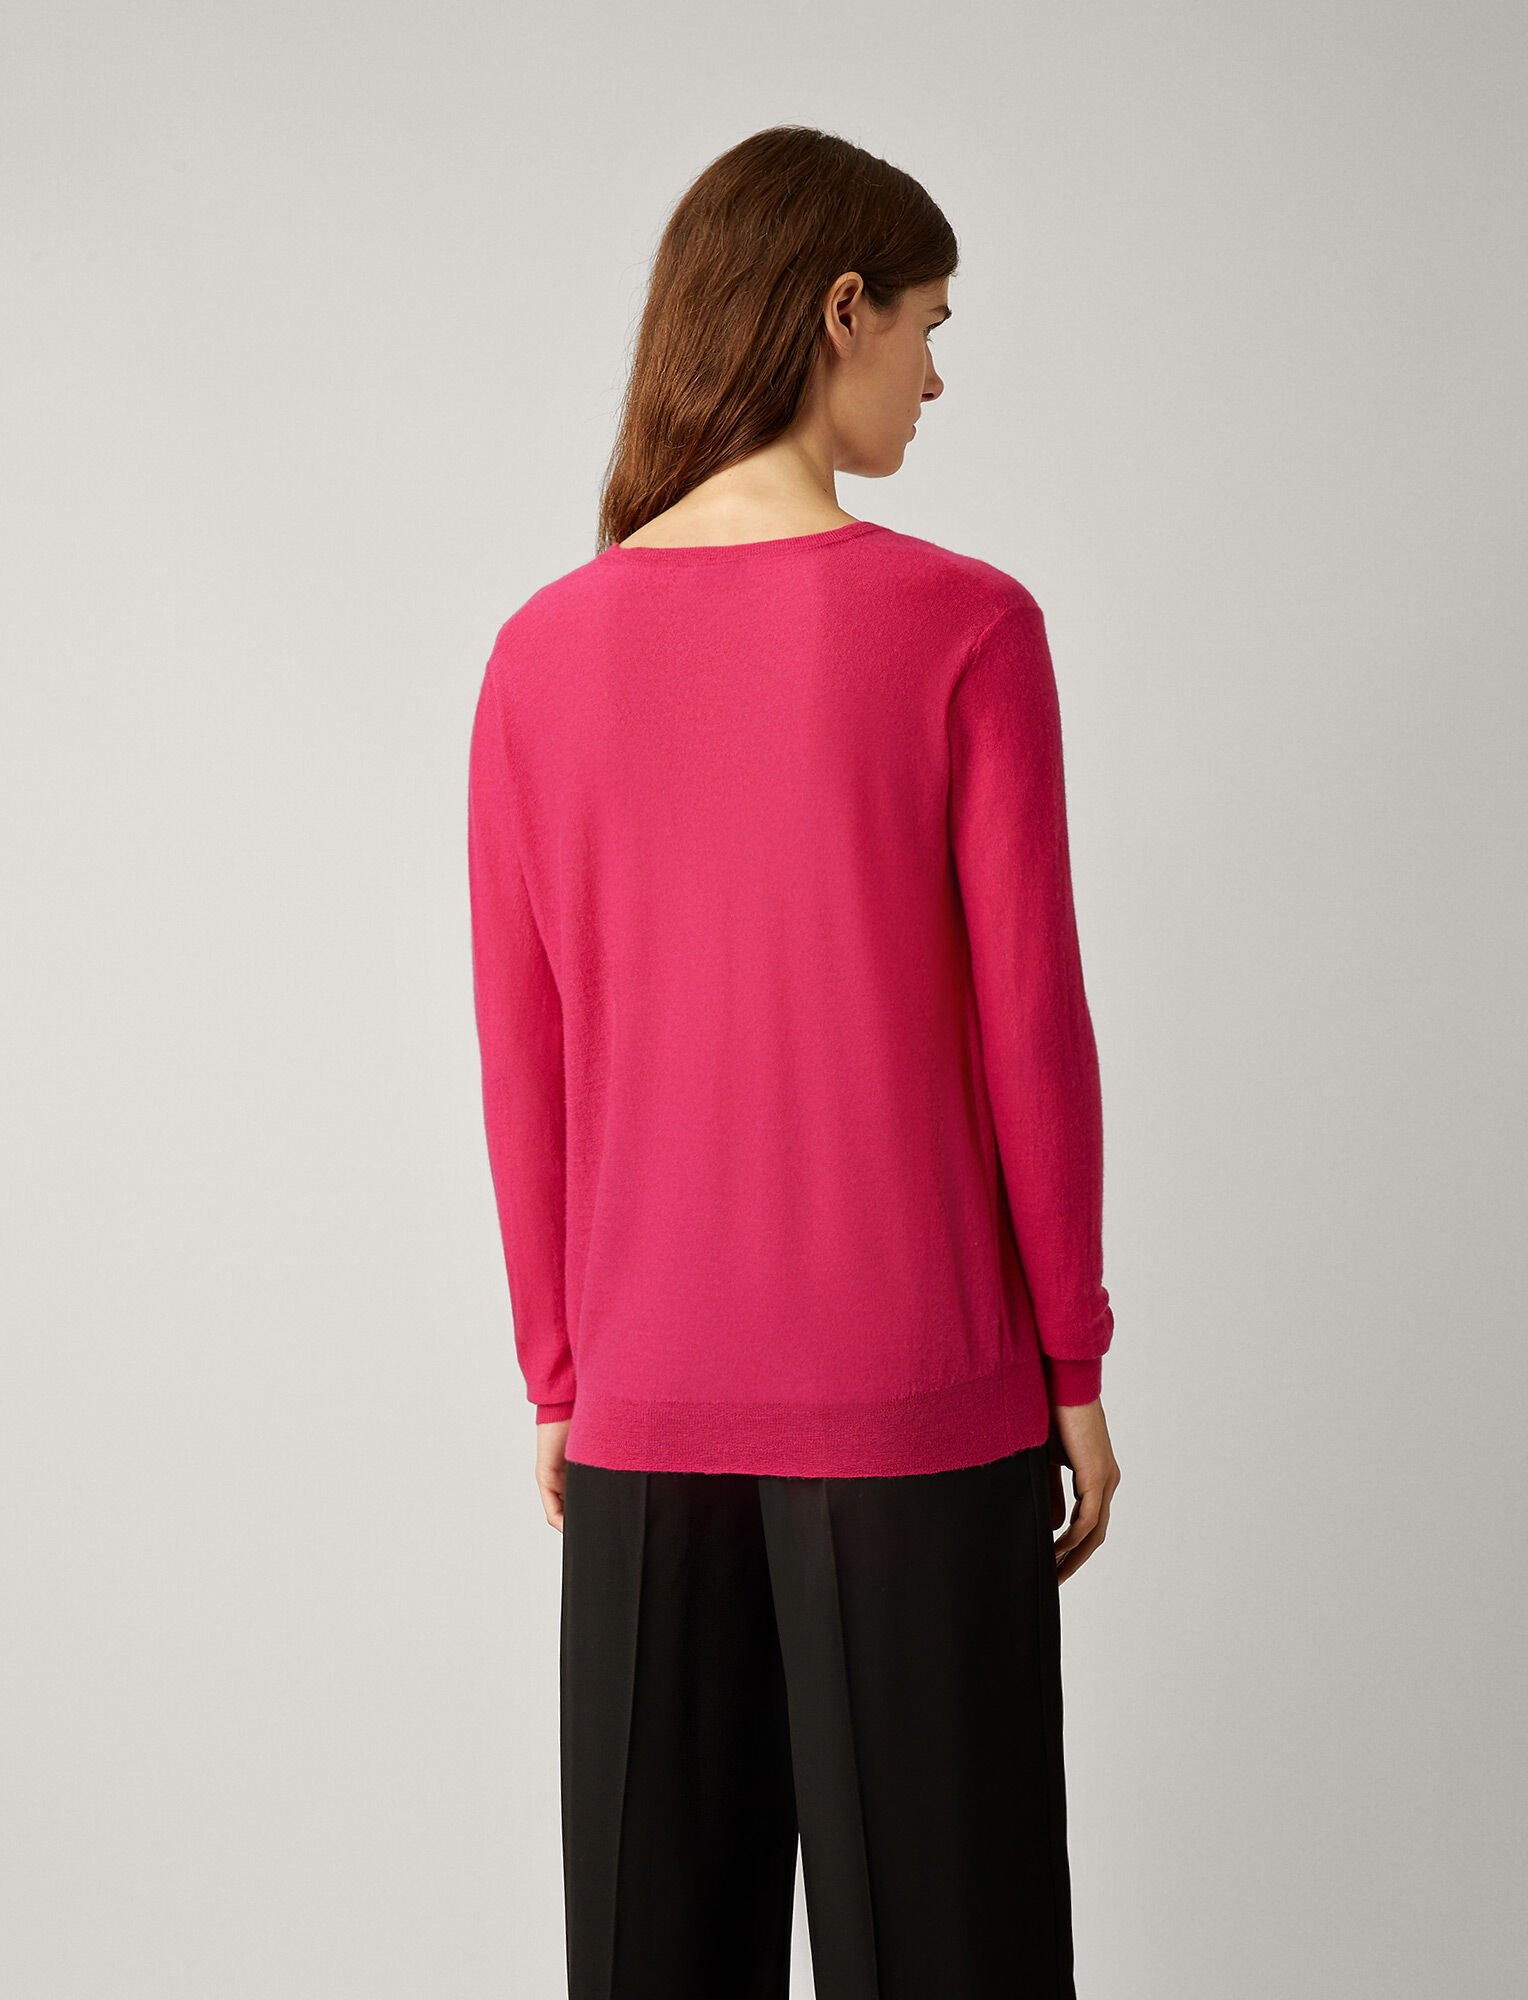 Joseph, V Neck Cashair Knit, in CORUNDUM